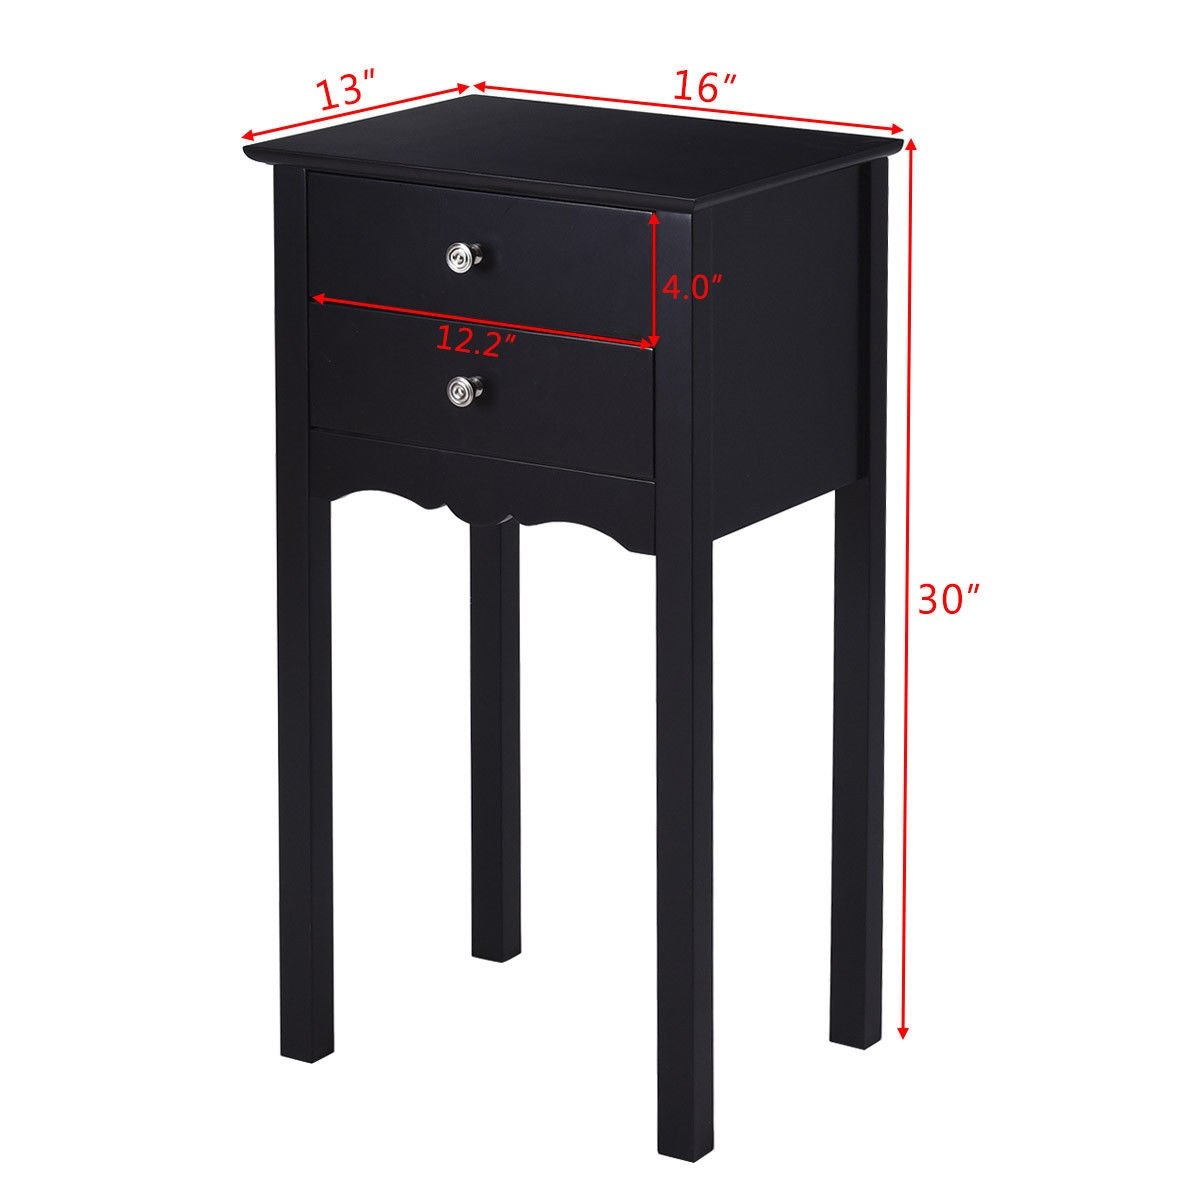 gymax side table end accent night stand drawers furniture black with storage free shipping today dining room buffet outdoor grill prep antique ese lamps small lamp mini mango